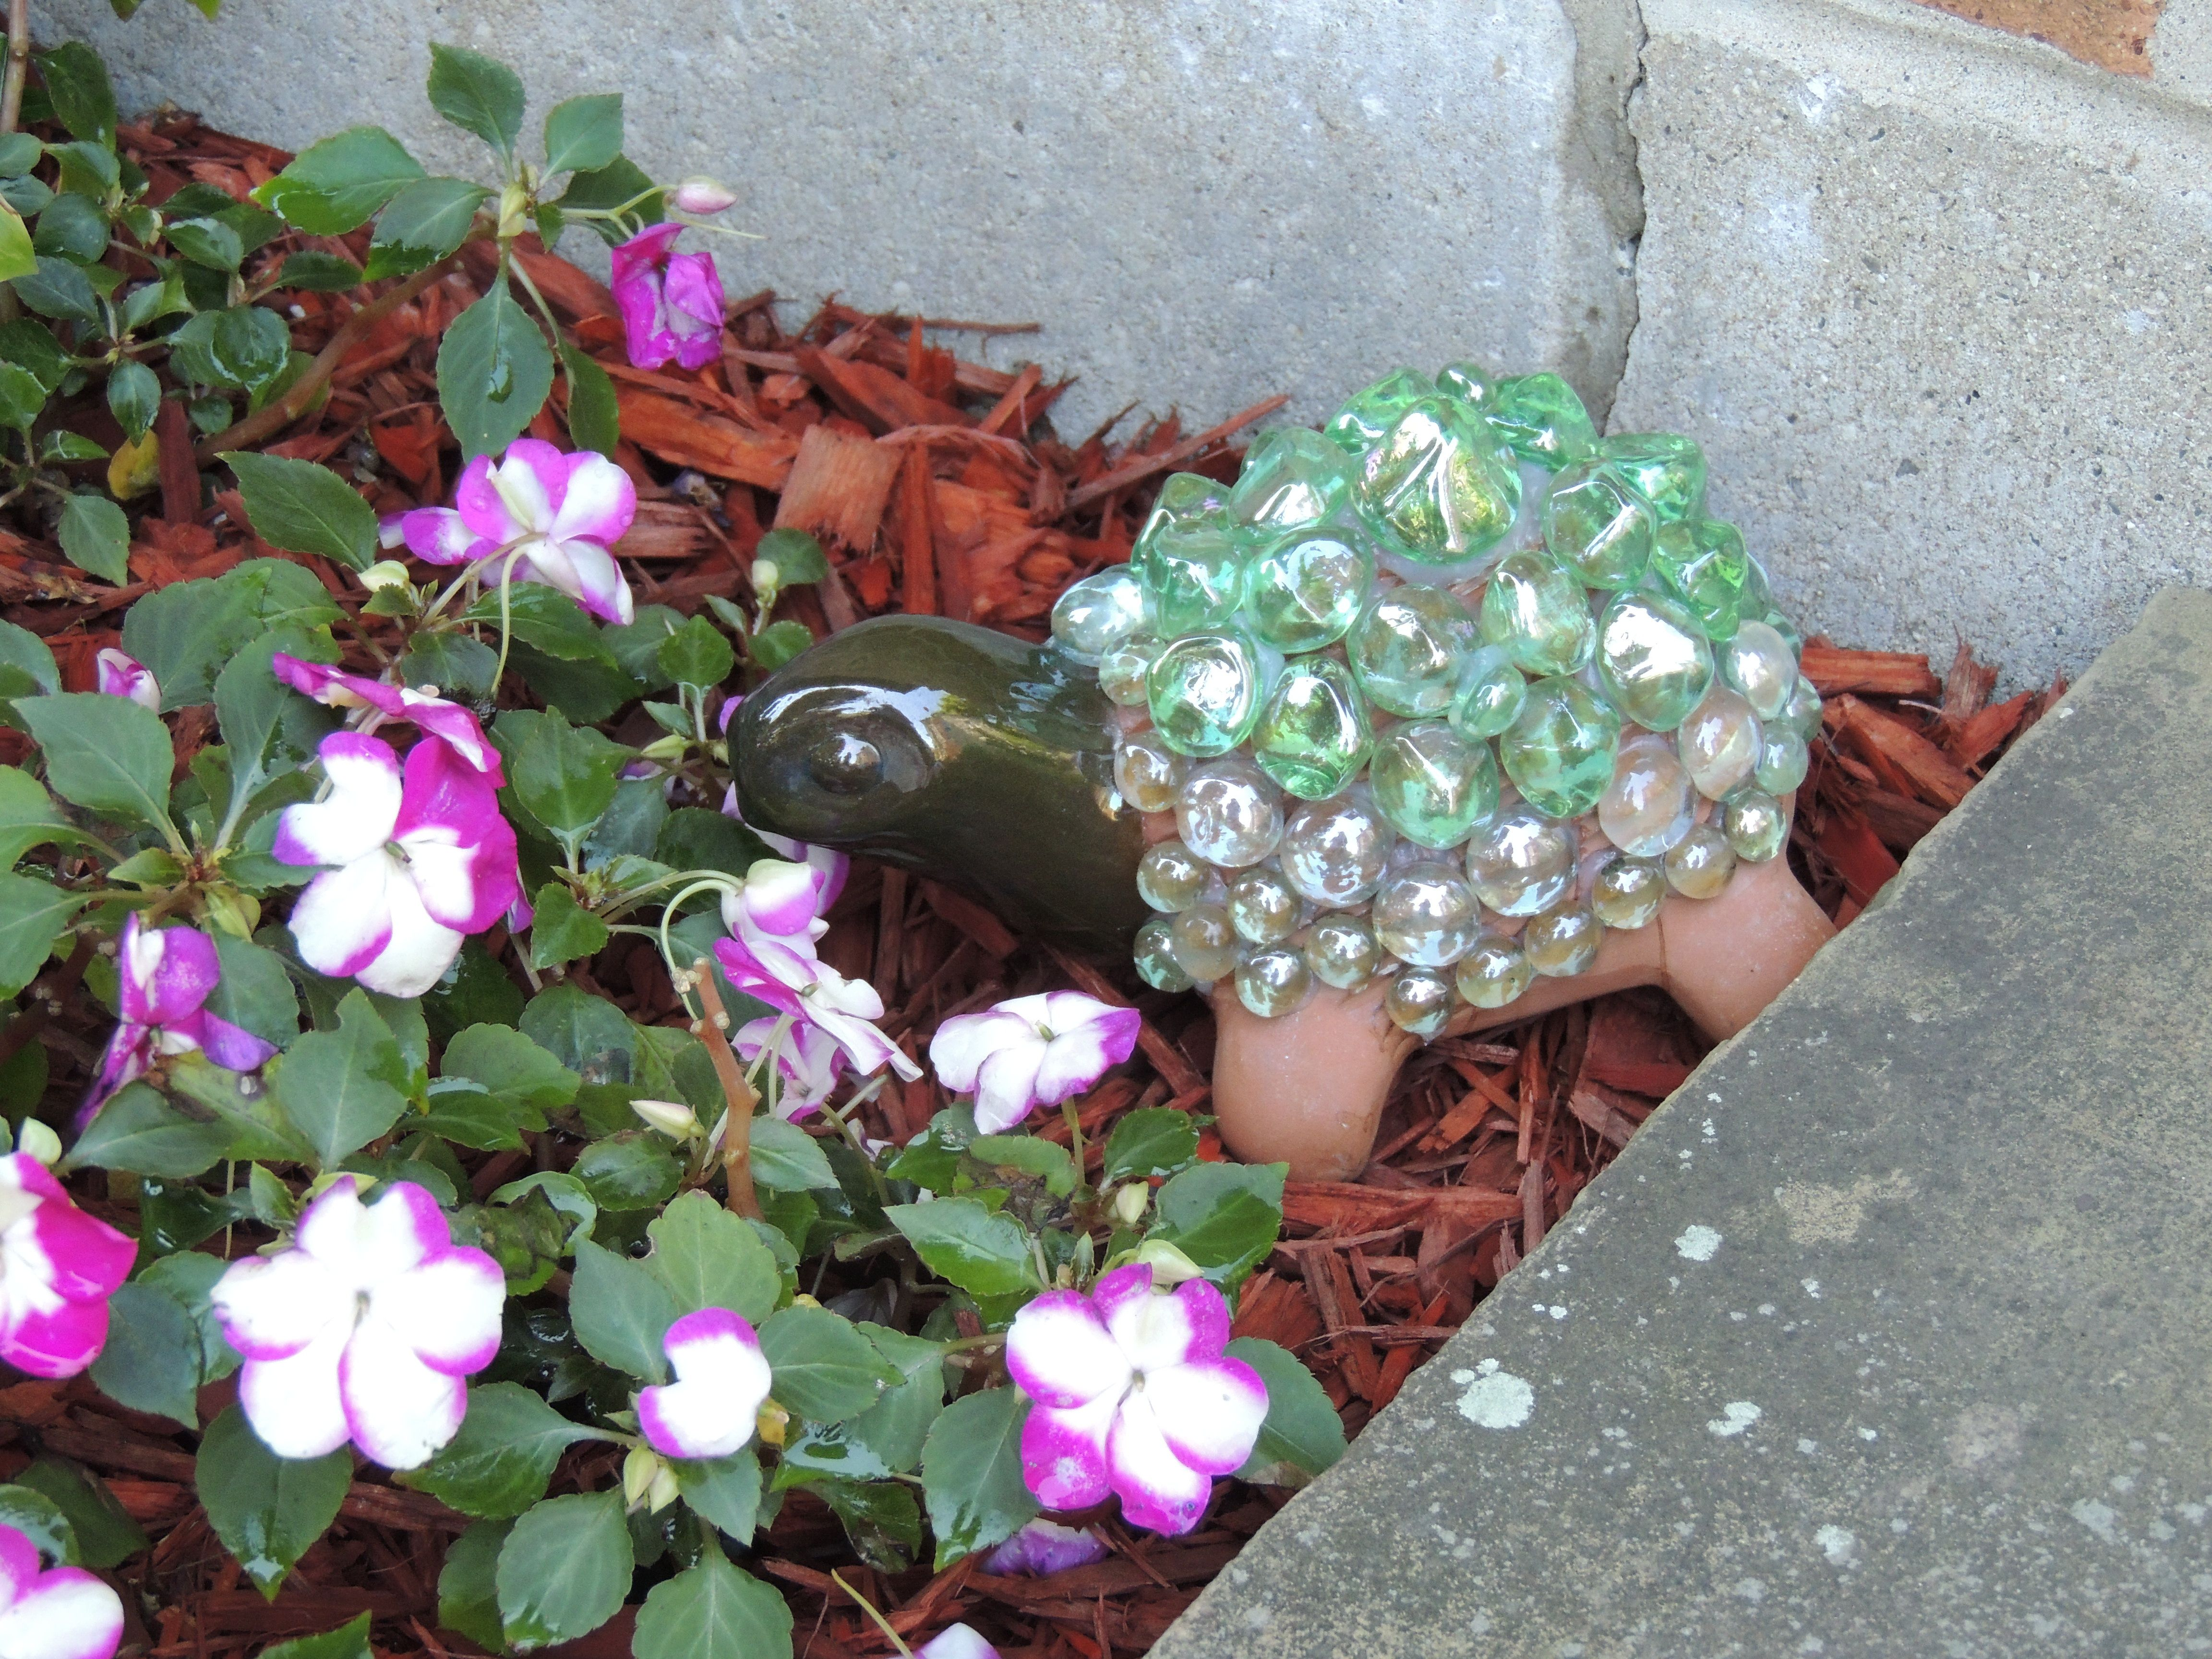 Chia Pet Turtle I covered with Decorative Accent Glass